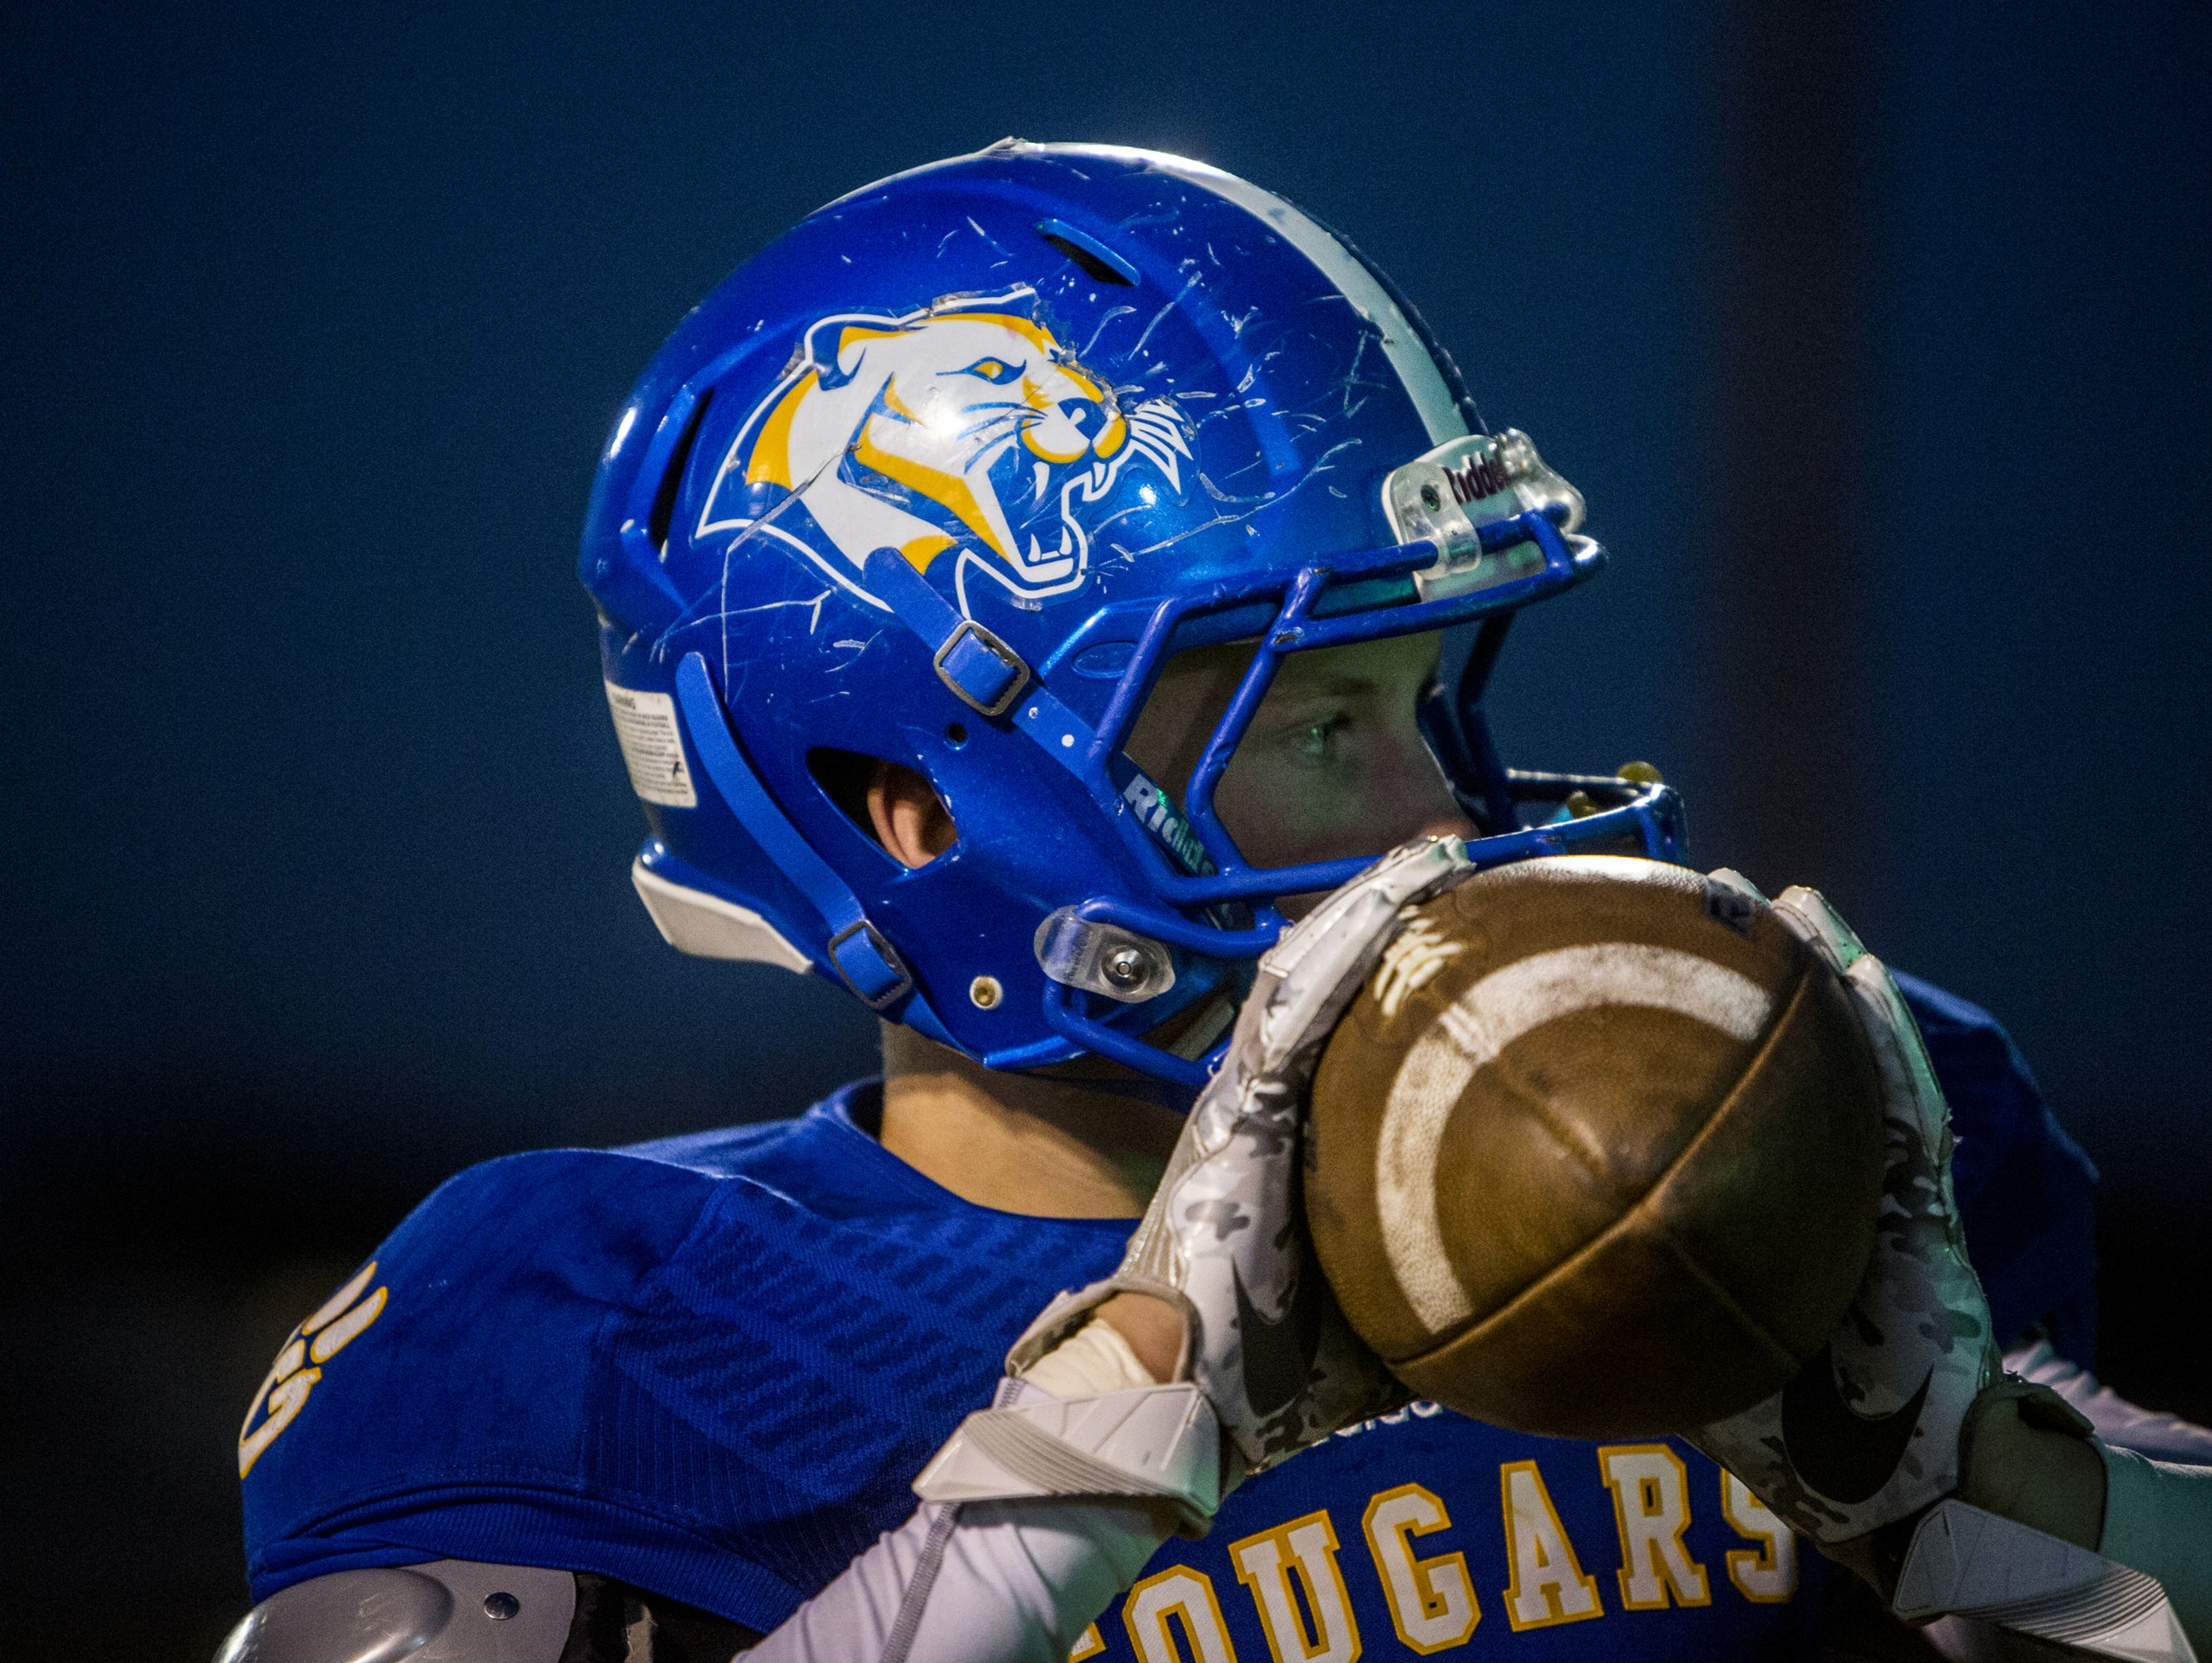 Goodpasture Christian School player Gabe Corley warms up before the game against Harpeth High School.